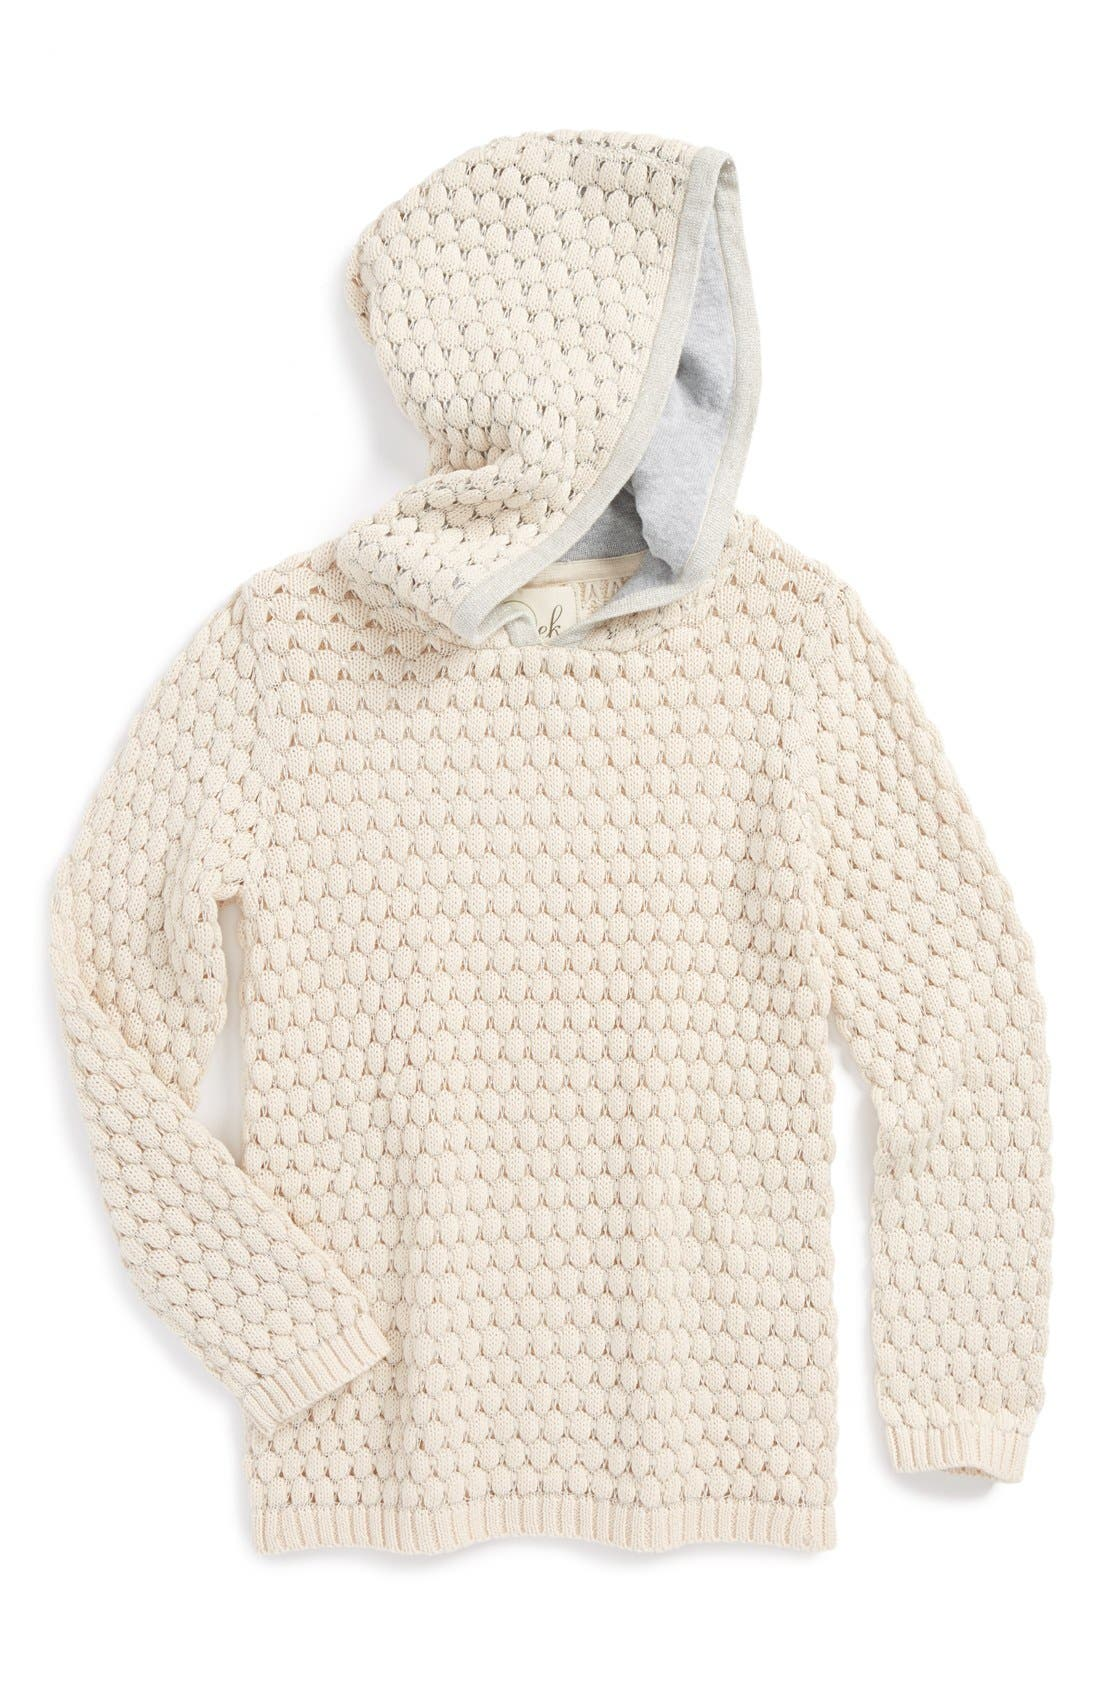 Alternate Image 1 Selected - Peek 'Gia' Metallic Loose Knit Hoodie (Baby Girls)